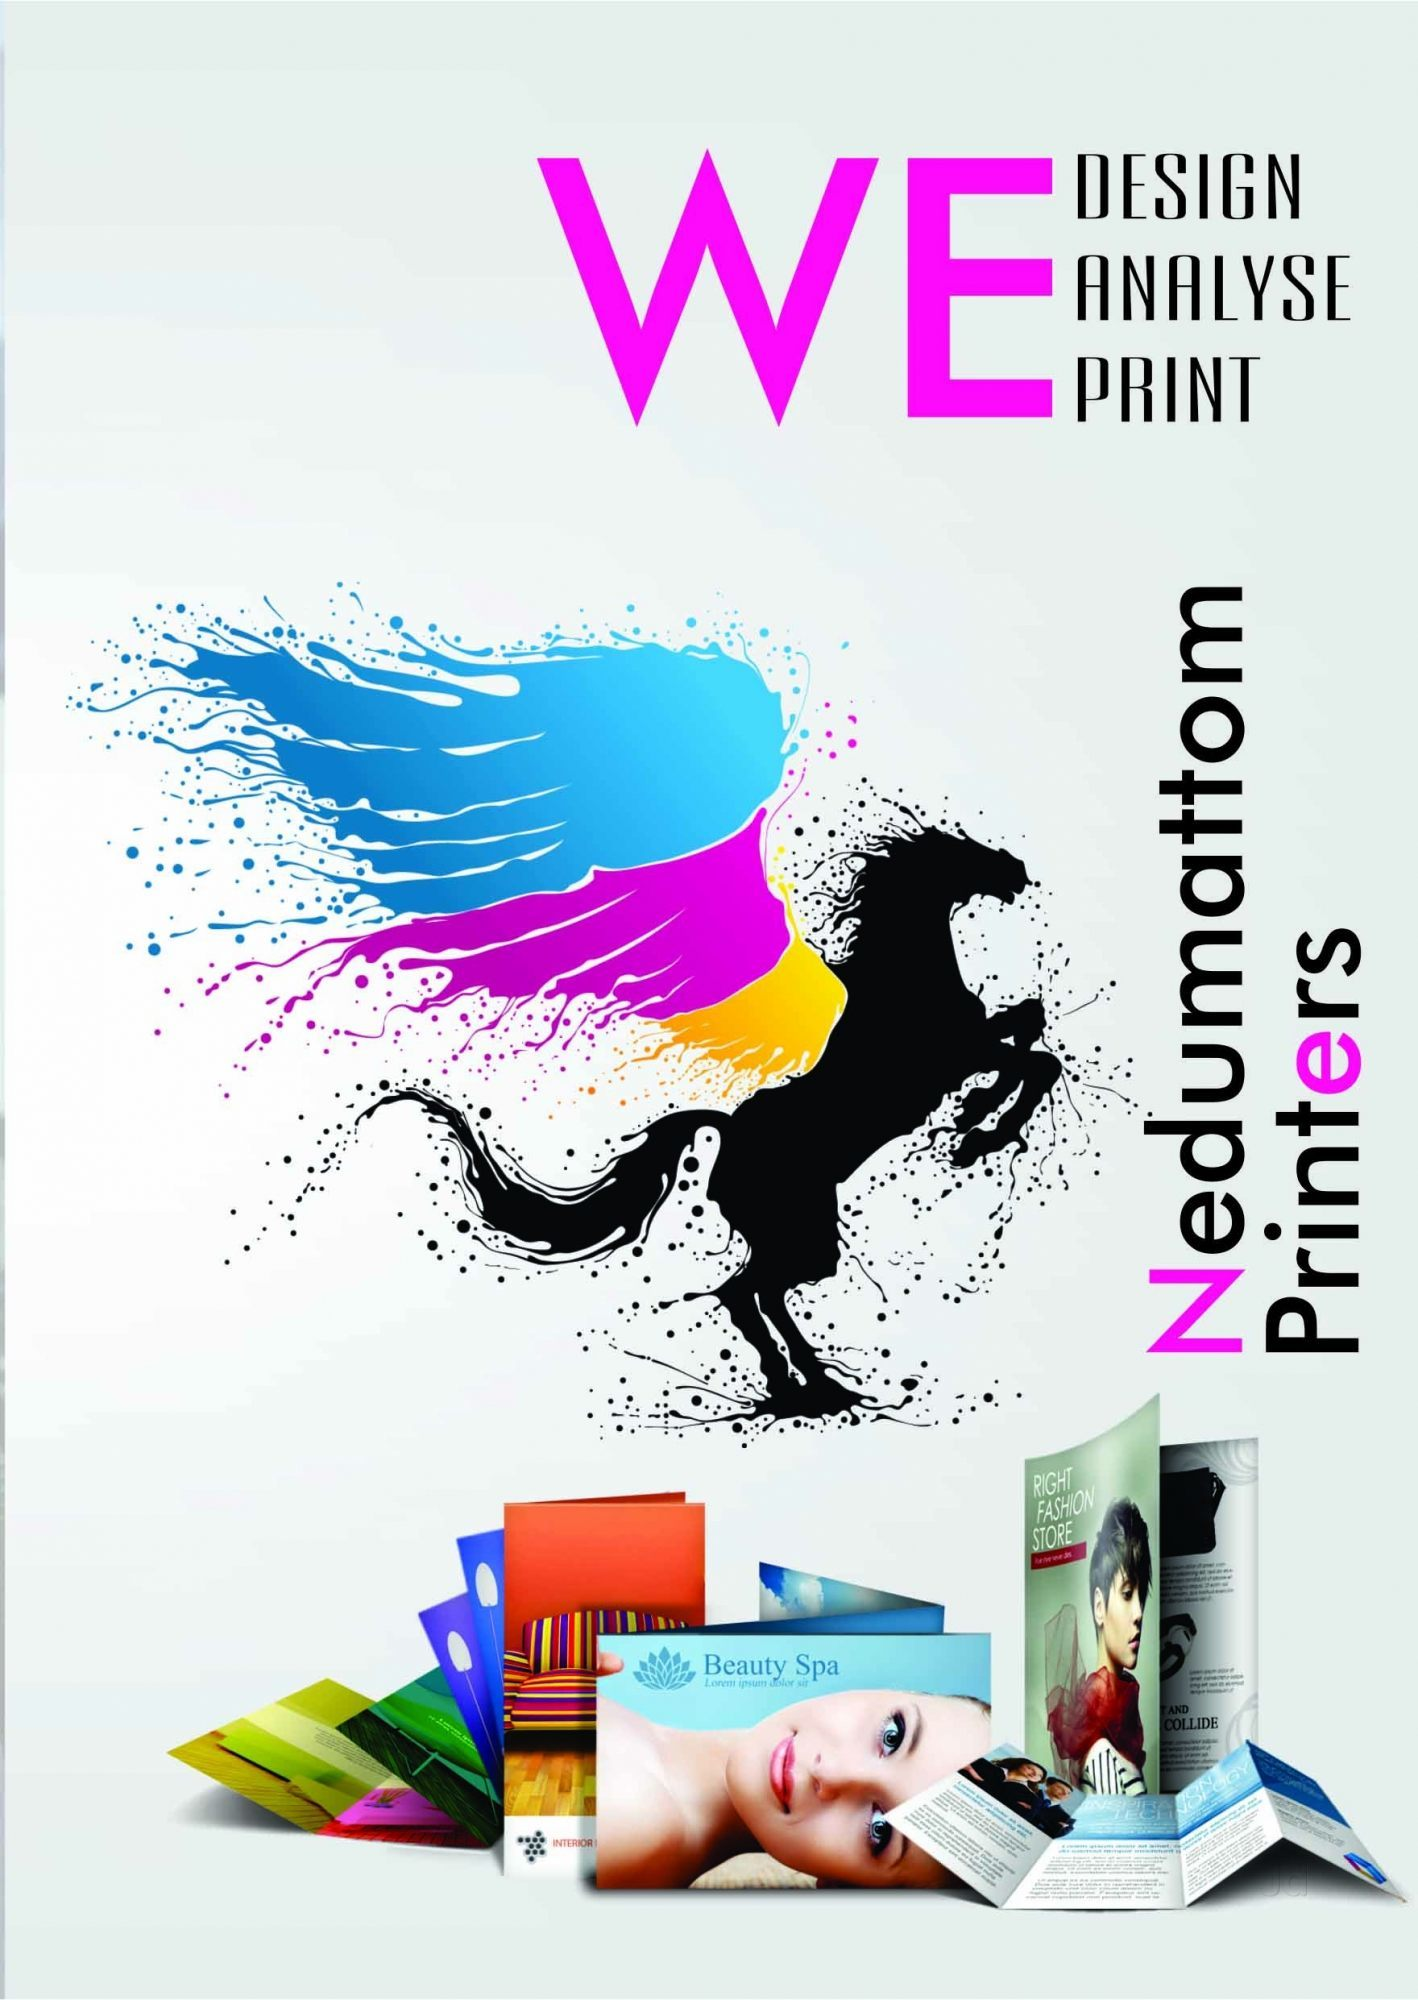 Top Offset Printers For Poster In Pampady South Best Printing Diagram Of As Well Press Kottayam